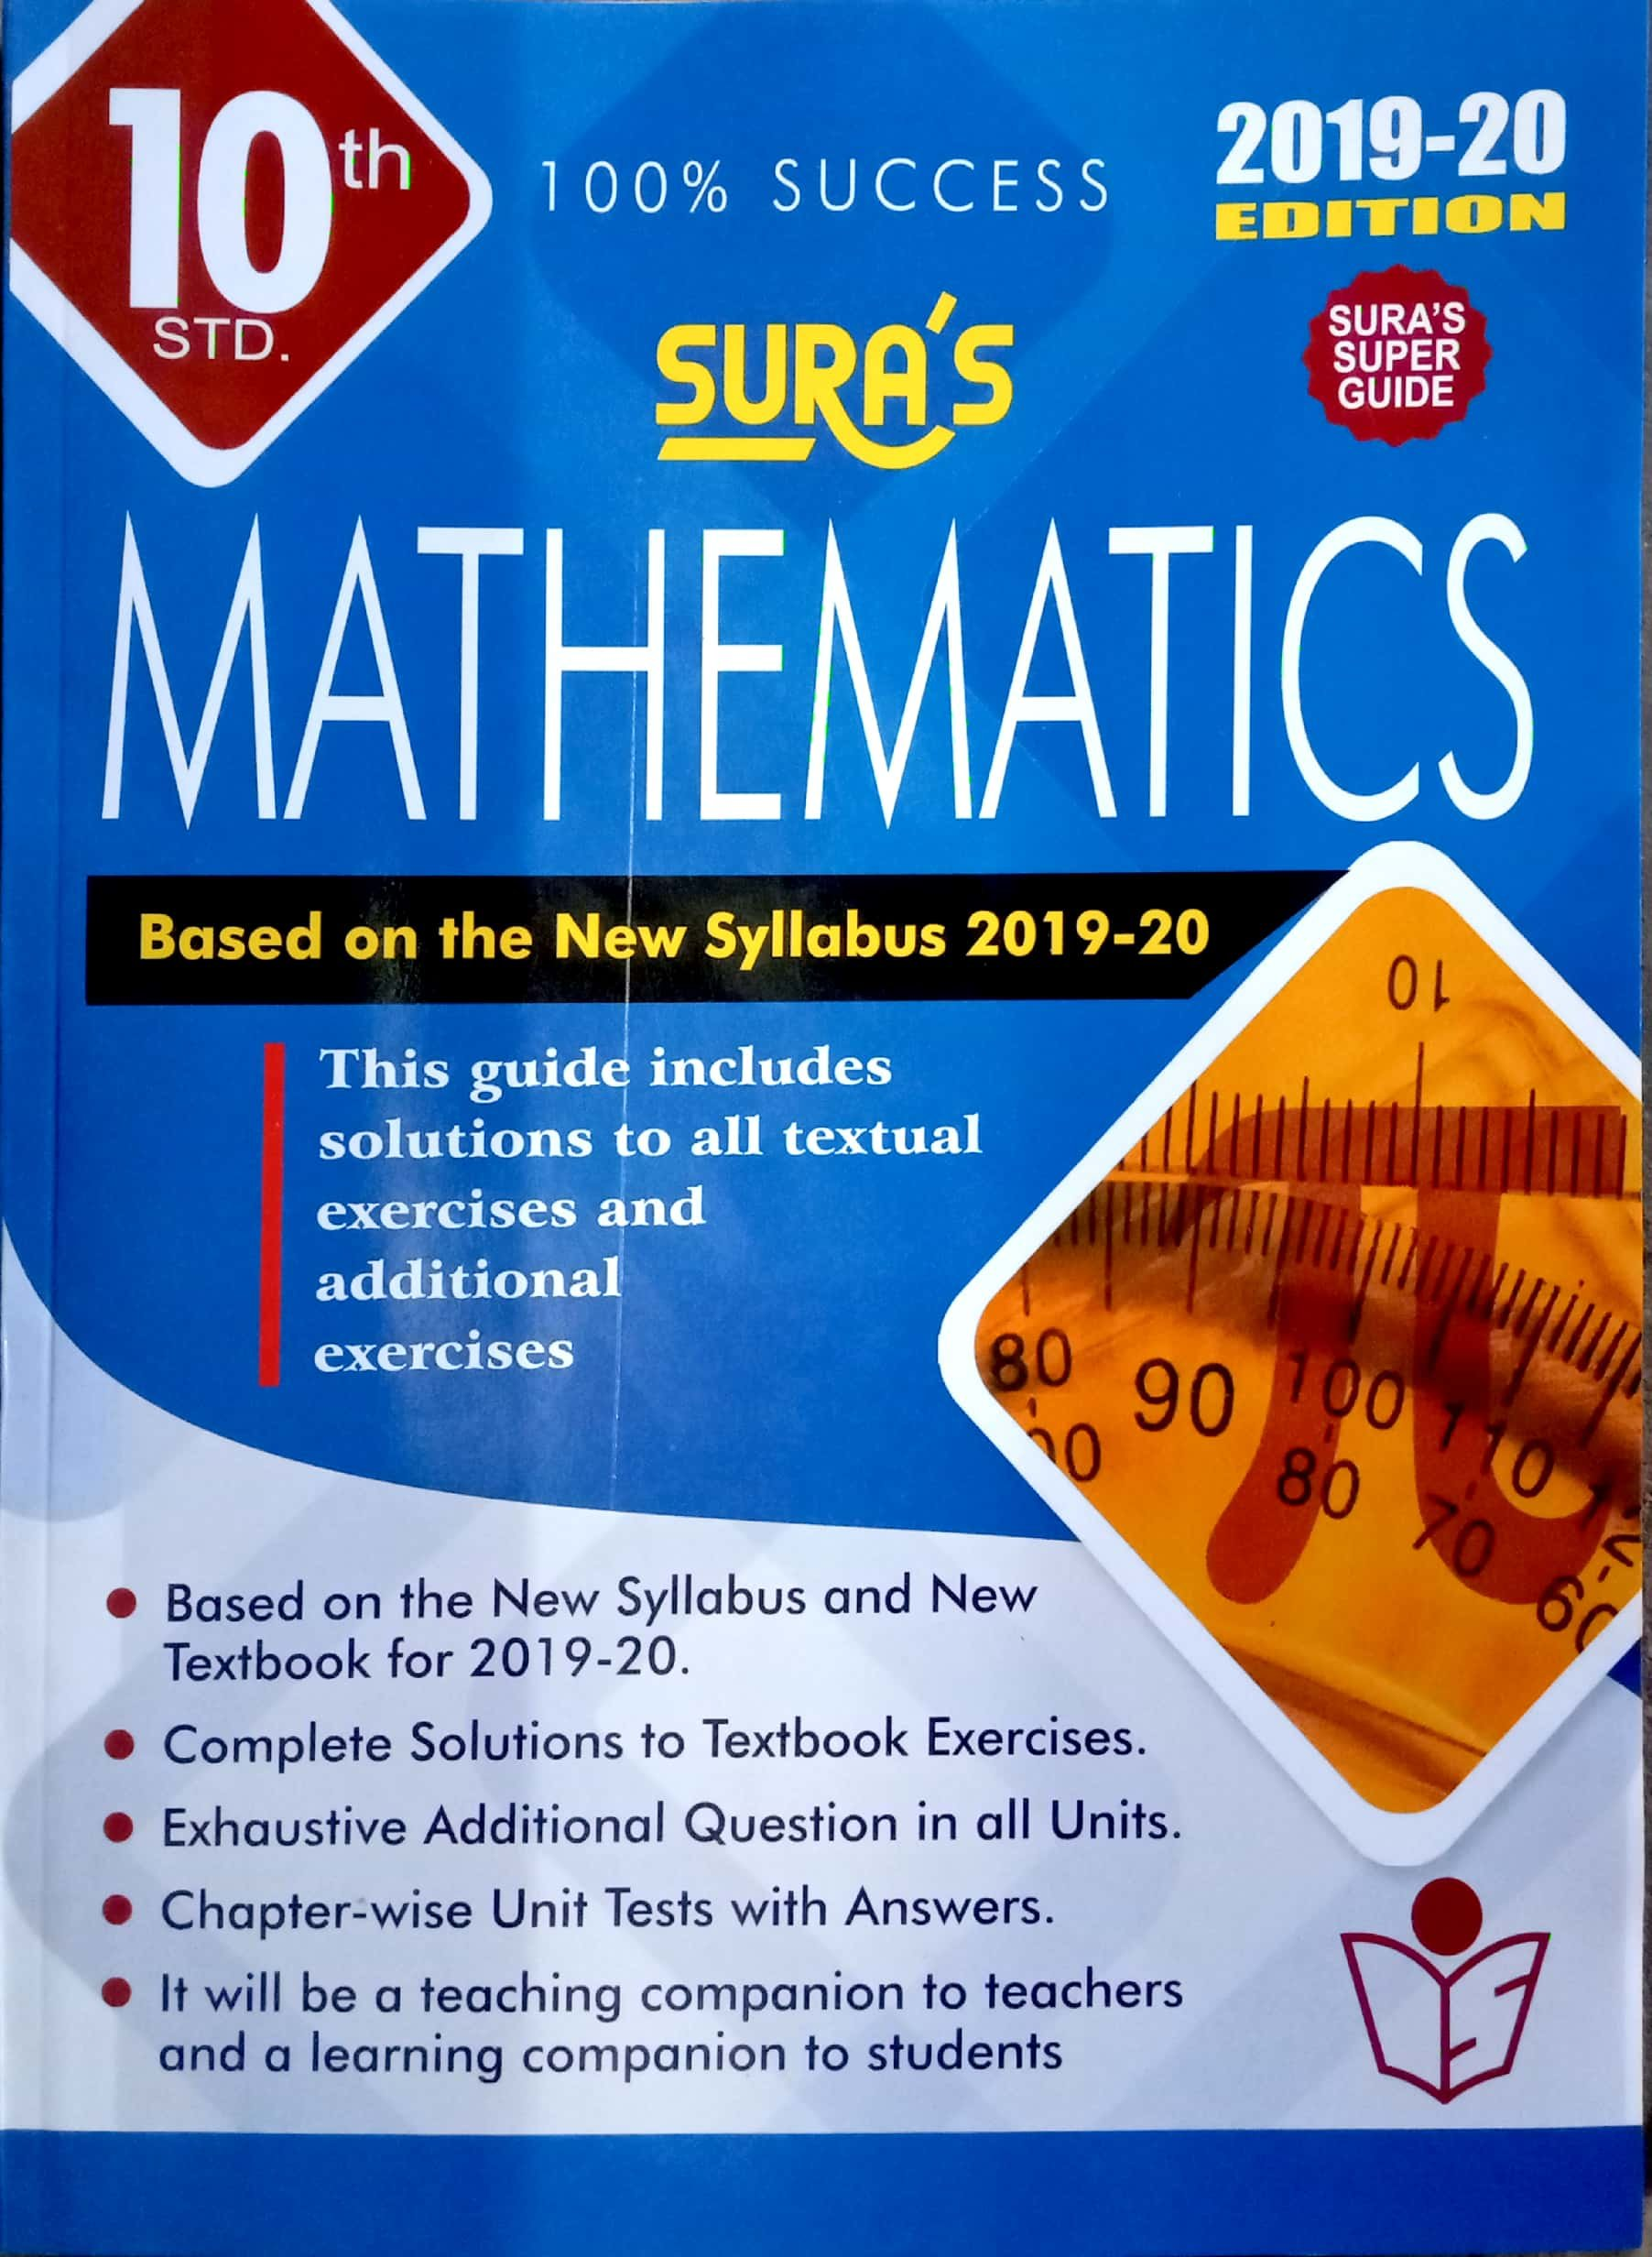 Routemybook - Buy 10th Standard Mathematics Guide [Based On The New